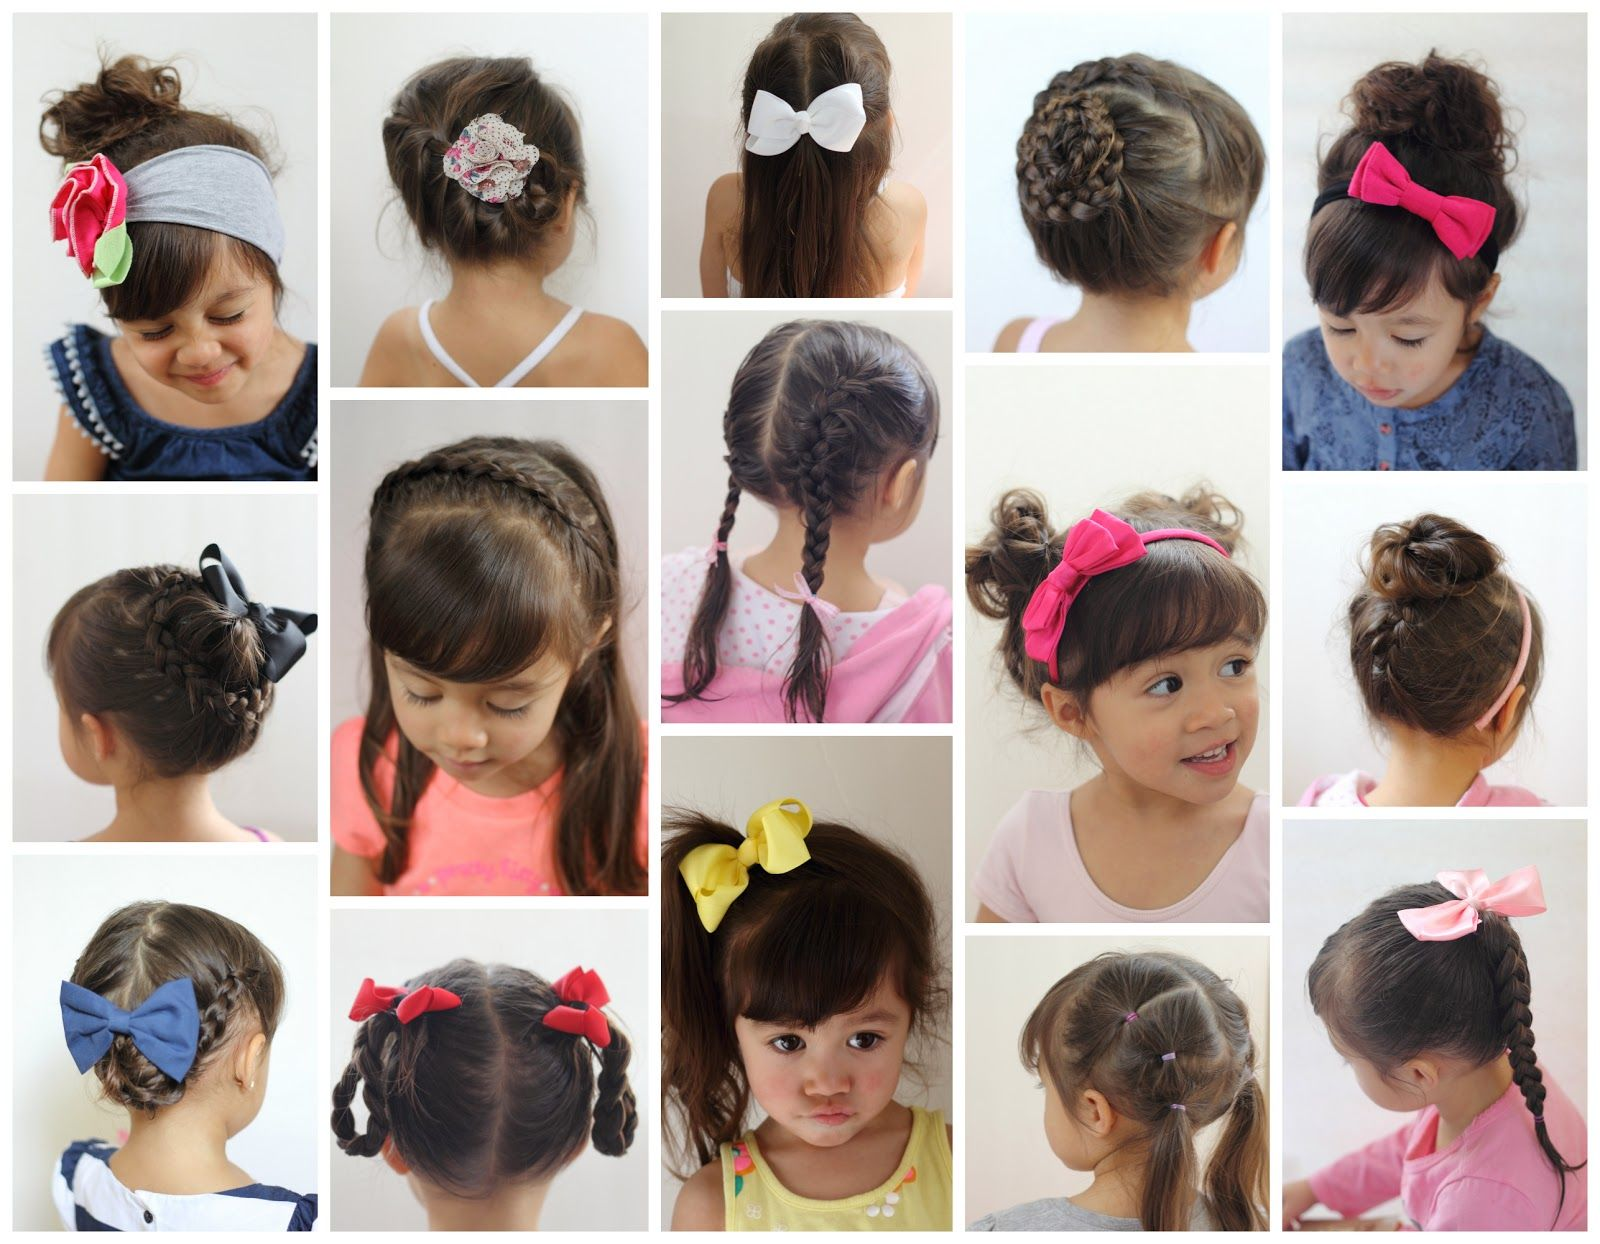 16 Toddler Hair Styles To Mix Up The Pony Tail And Simple Braids Dutch Braids French Braid Side Pony Tail Brai Toddler Hair Baby Girl Hair Kids Hairstyles